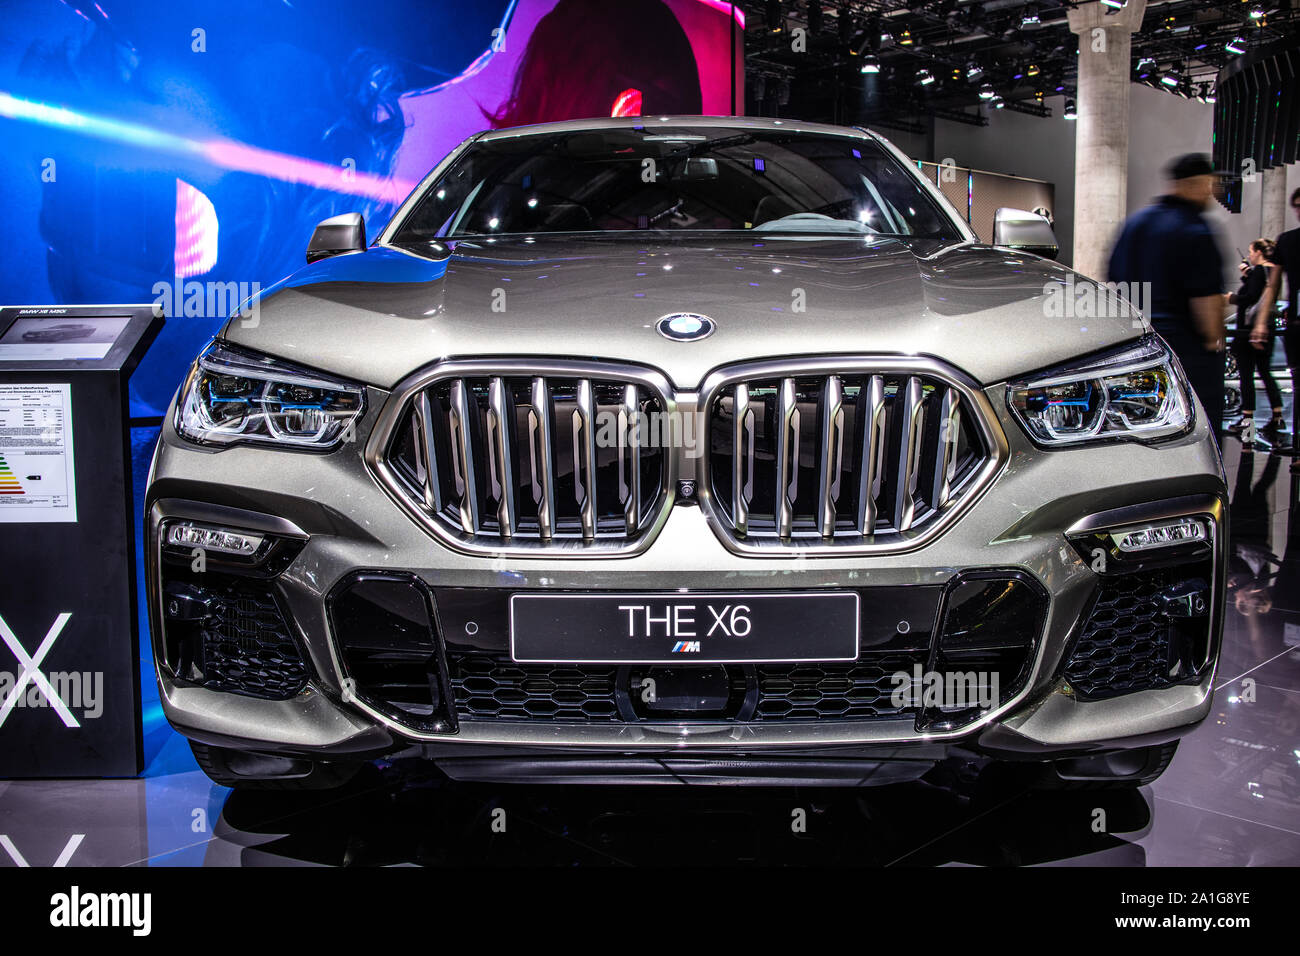 Frankfurt Germany Sep 2019 All New Bmw X6 3rd Gen At Iaa Third Generation G06 2020 Model Year Mid Size Luxury Crossover Suv Produced By Bmw Stock Photo Alamy